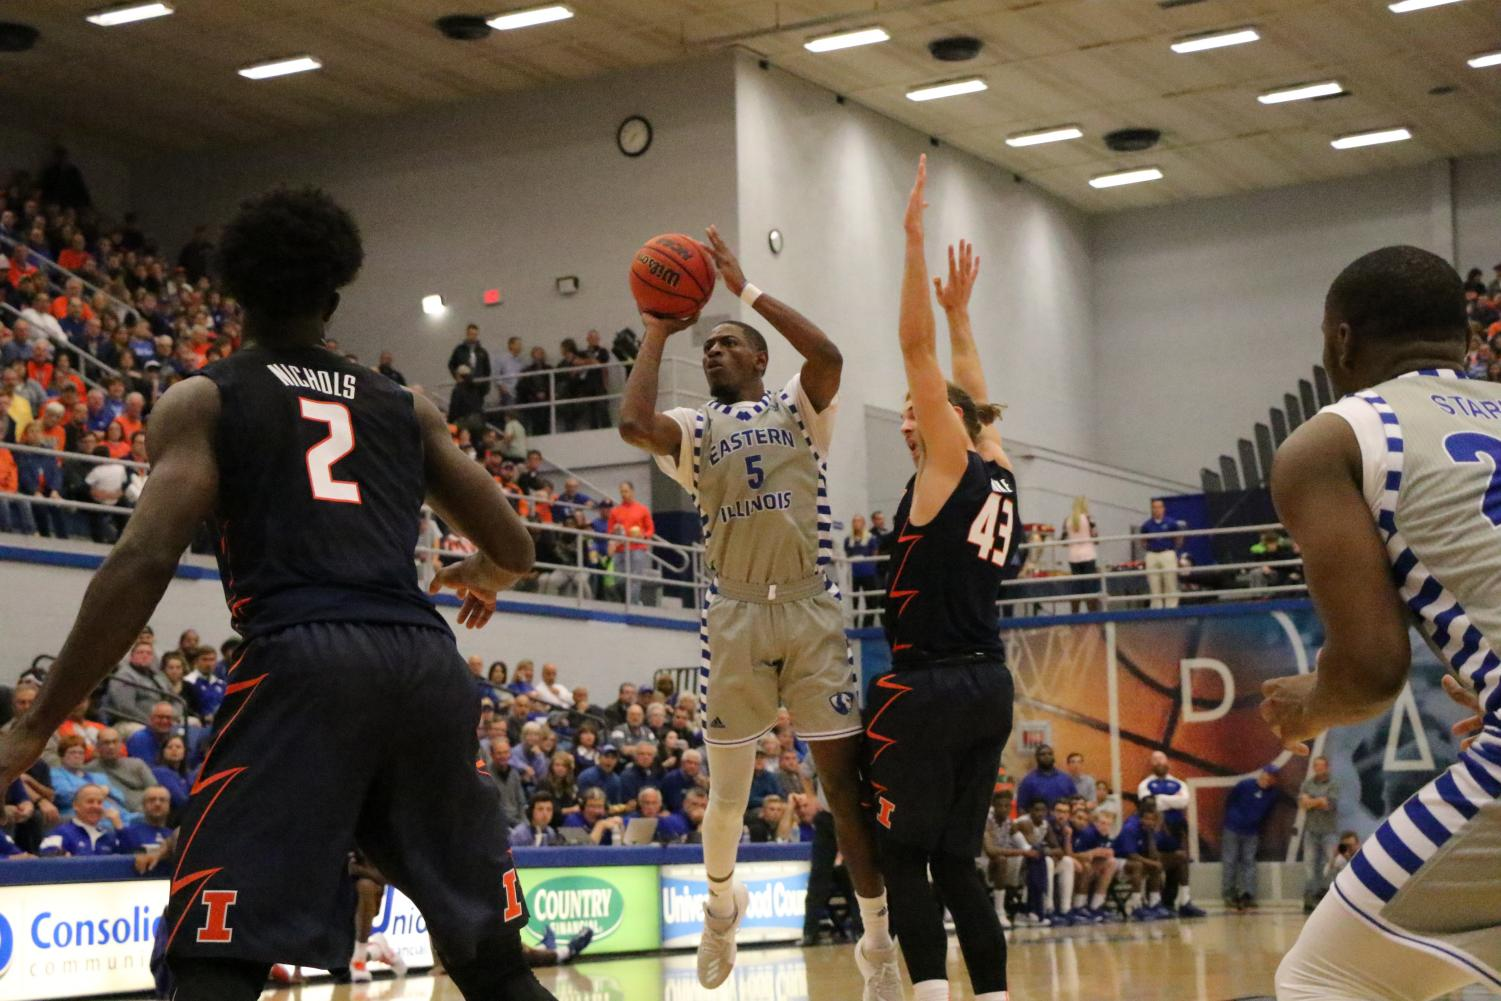 Senior Ray Crossland throws up a floater for the score in the Panthers' 80-67 win over the University of Illinois Friday in Lantz Arena.